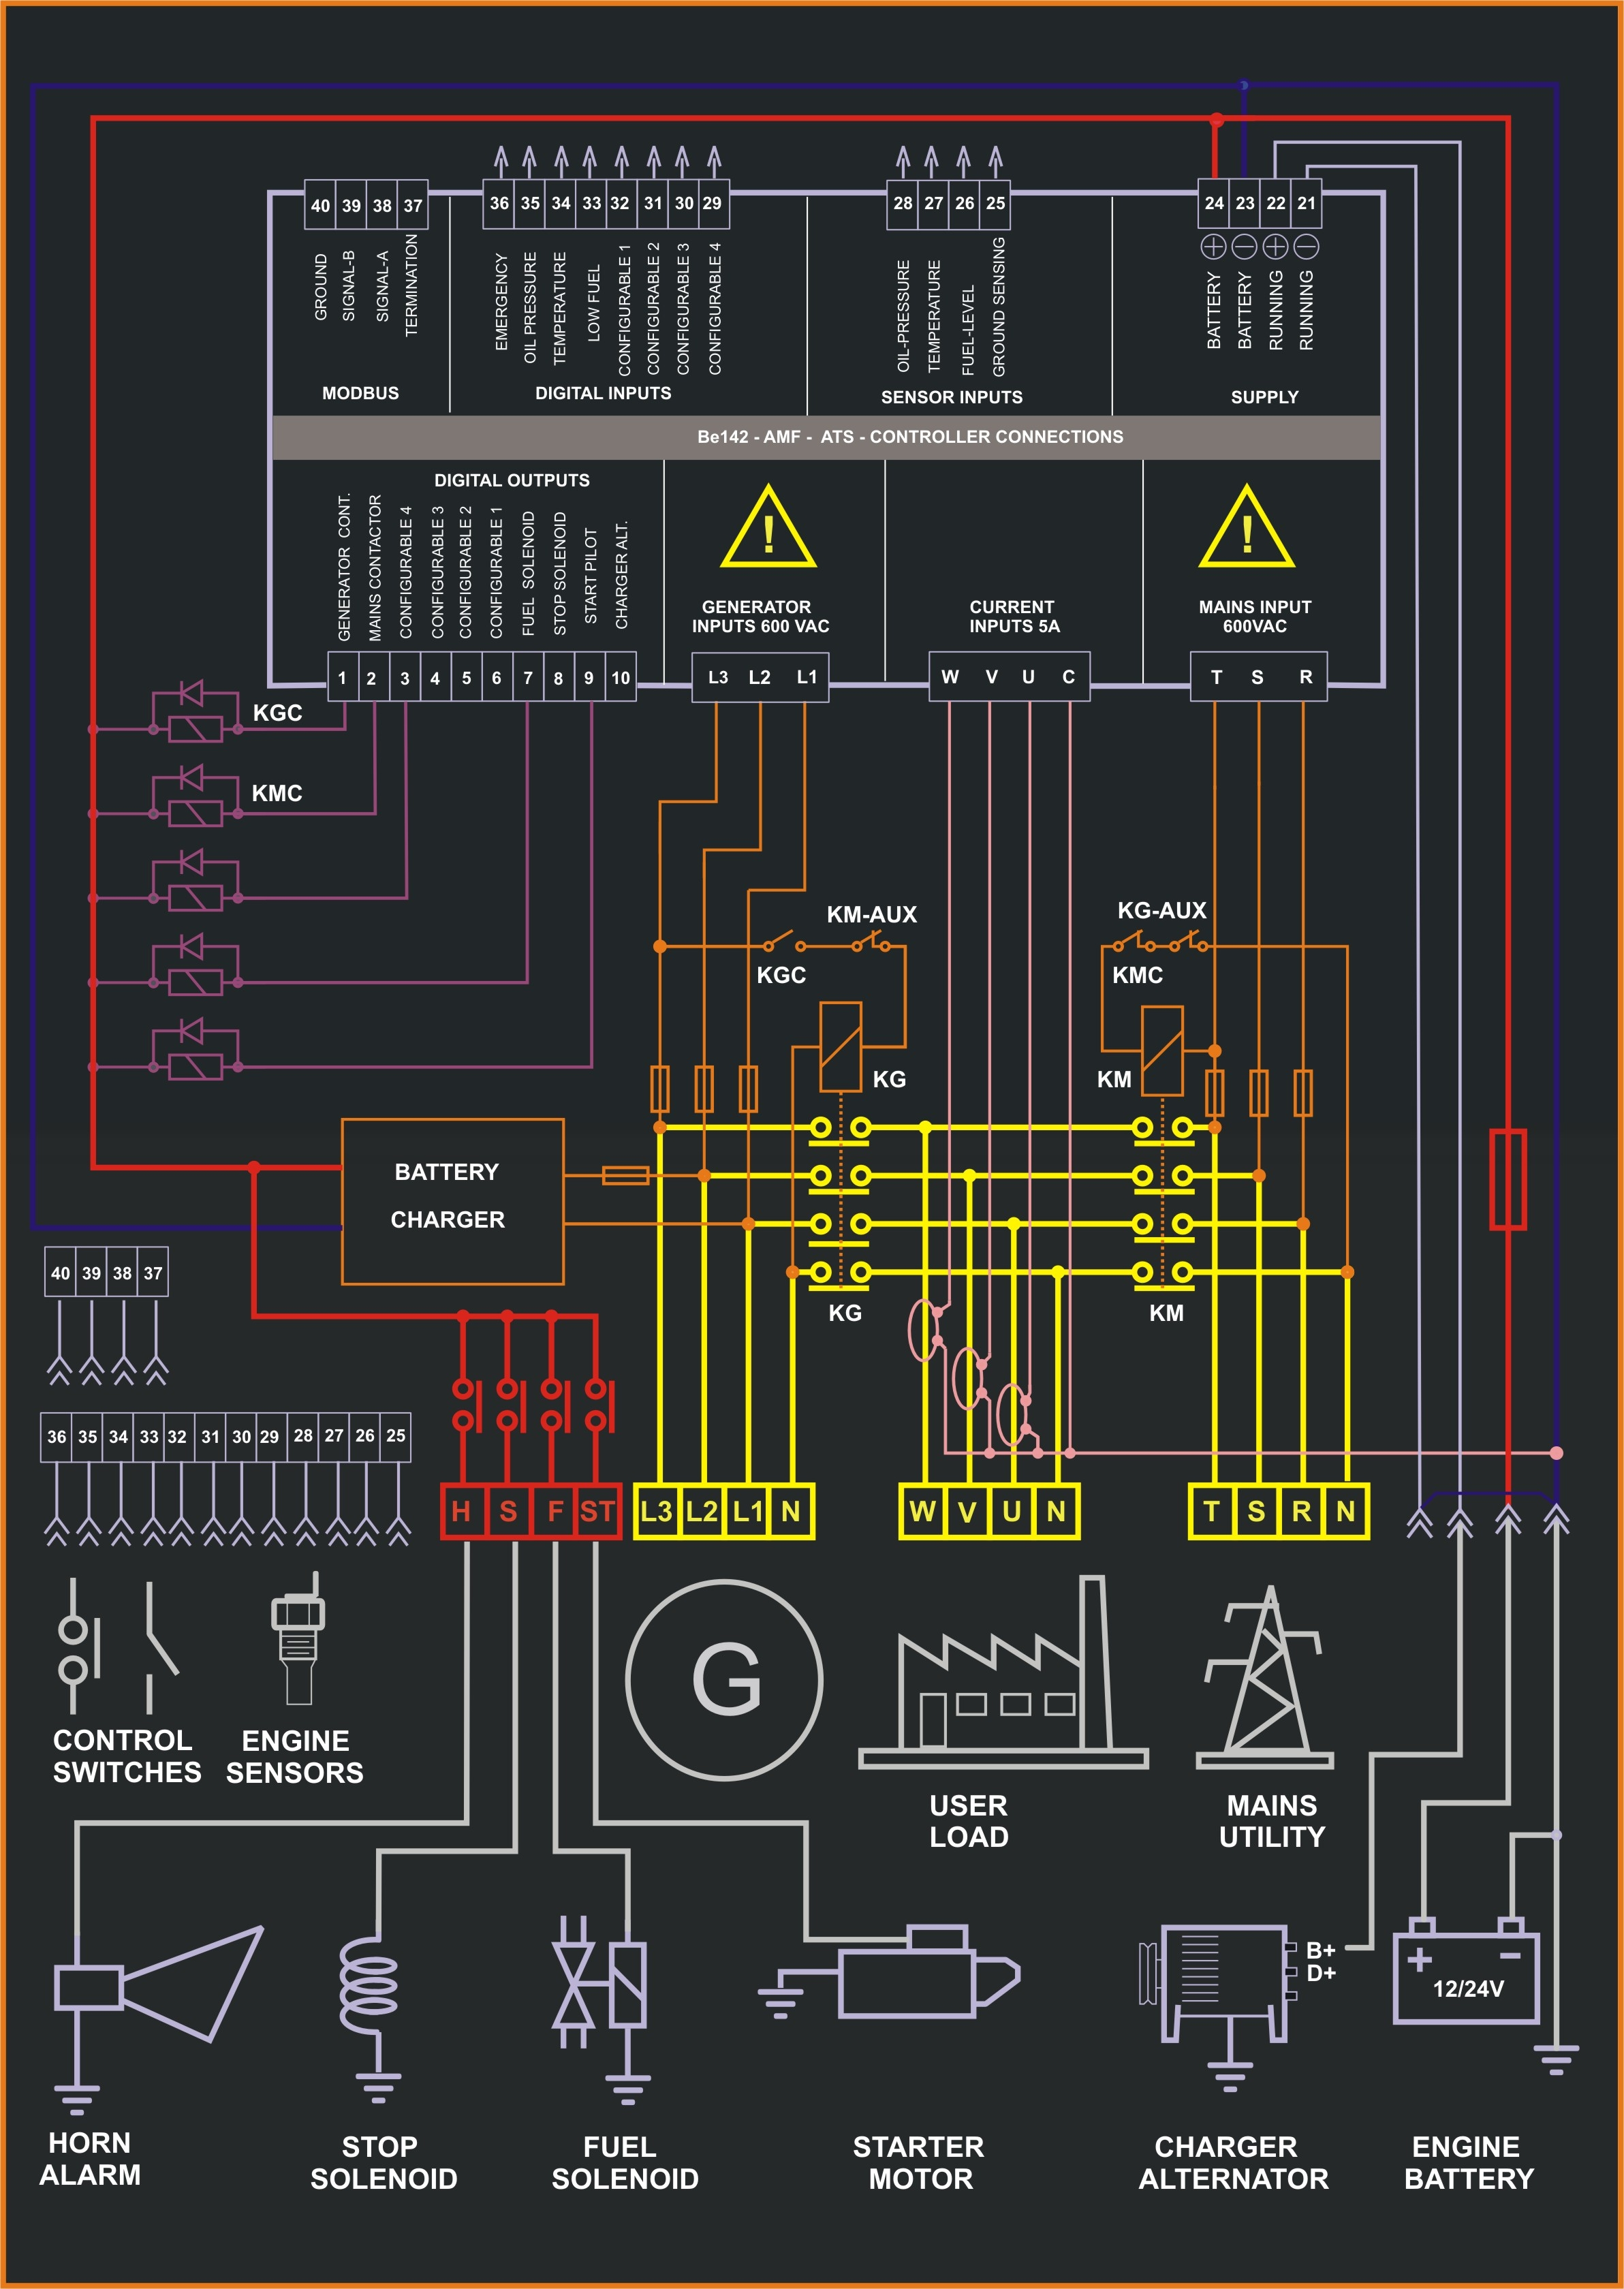 Amf Controller Be142 Genset For Circuit Diagram And Other Details Click Here Wiring On The Image To See In This Example A Basic 100kva Panel